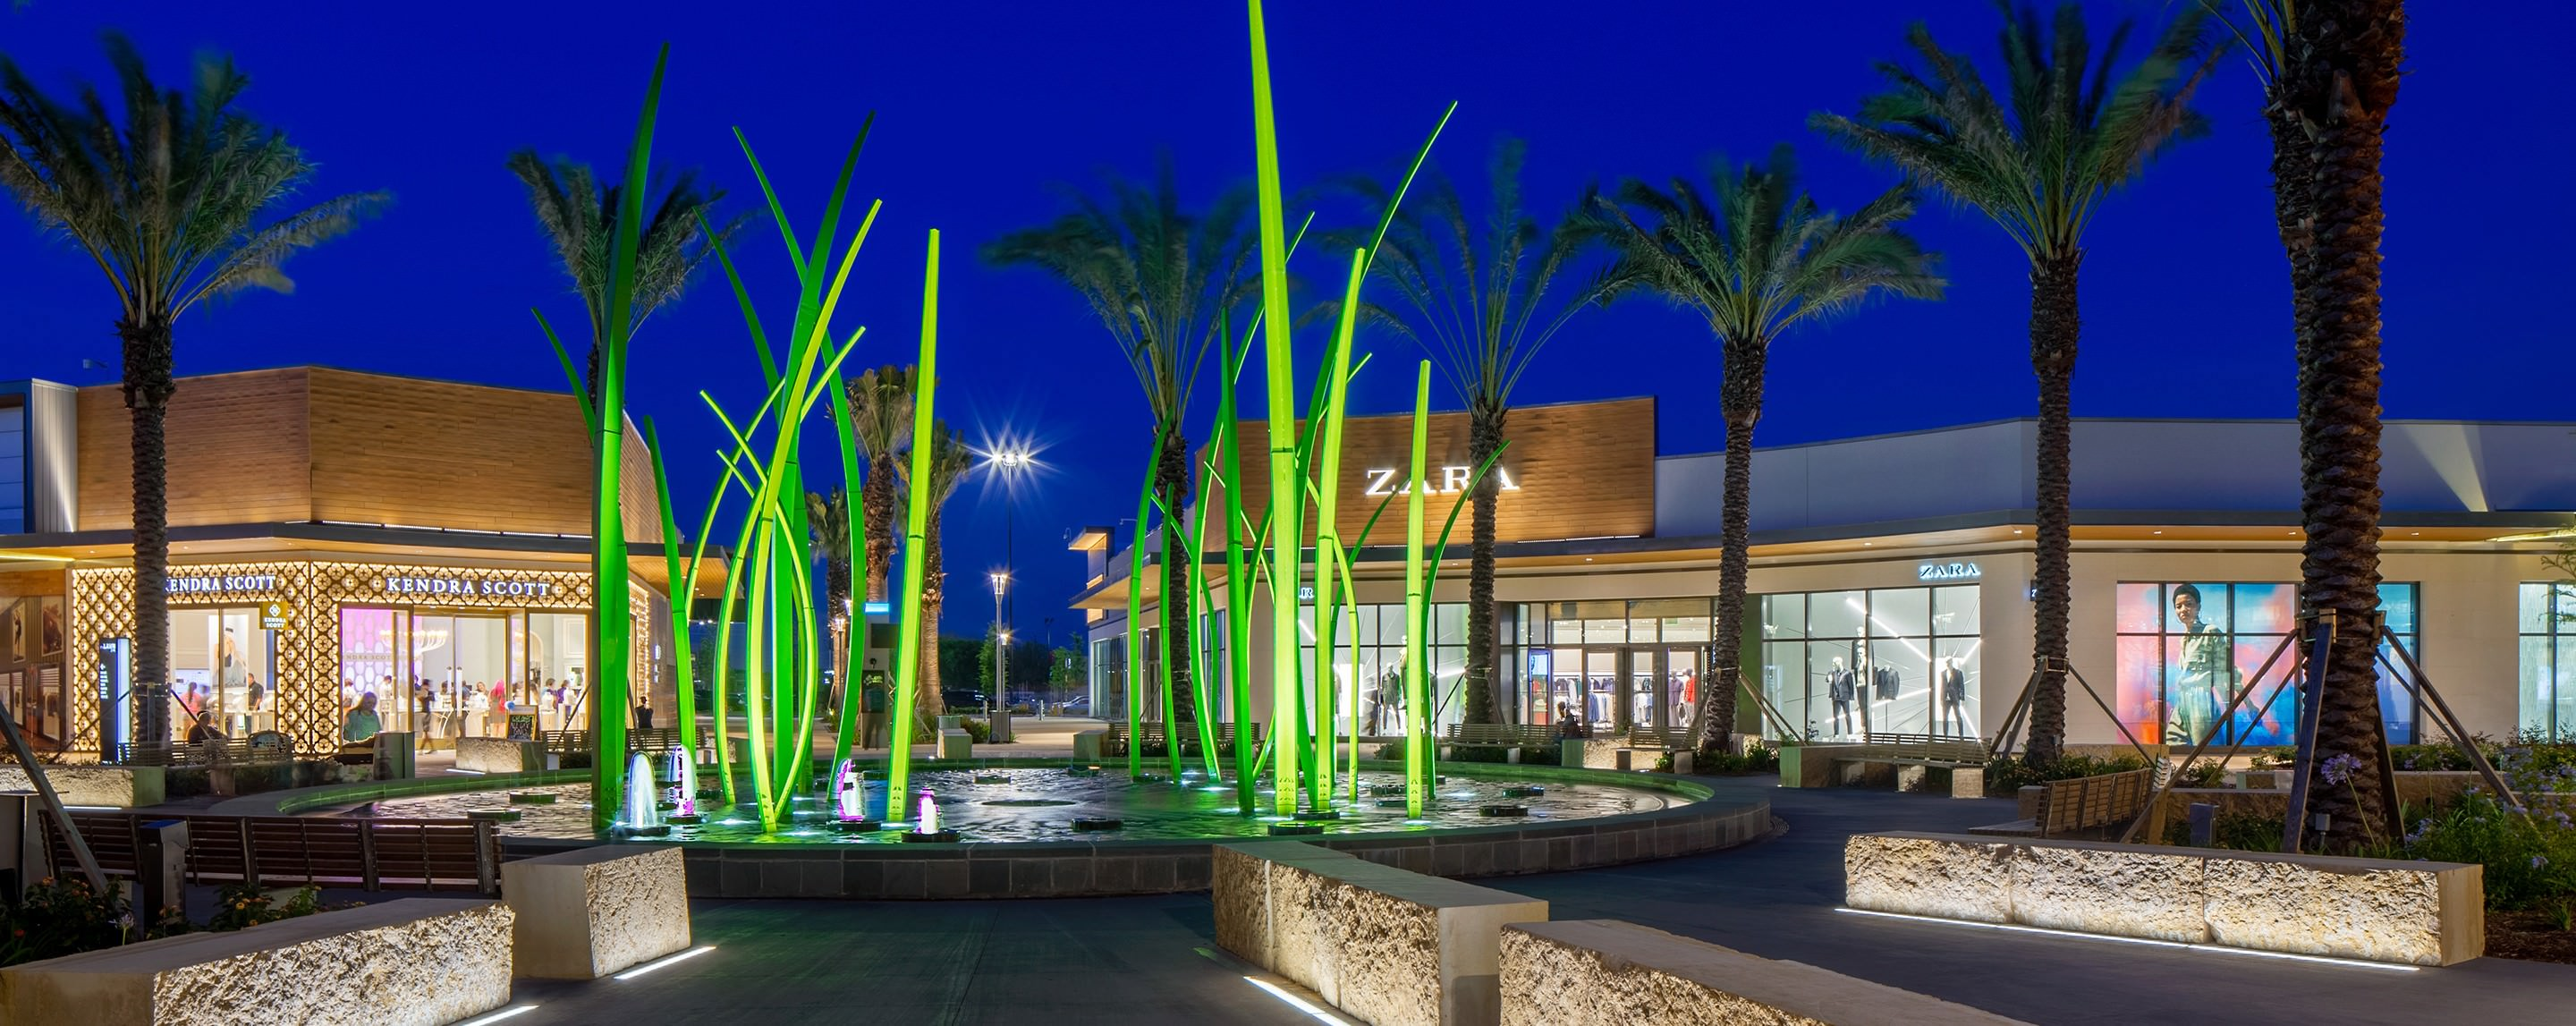 The outside of a mall is decorated with palm trees, a fountain and various fake plants.  There is a Zaras in the background.